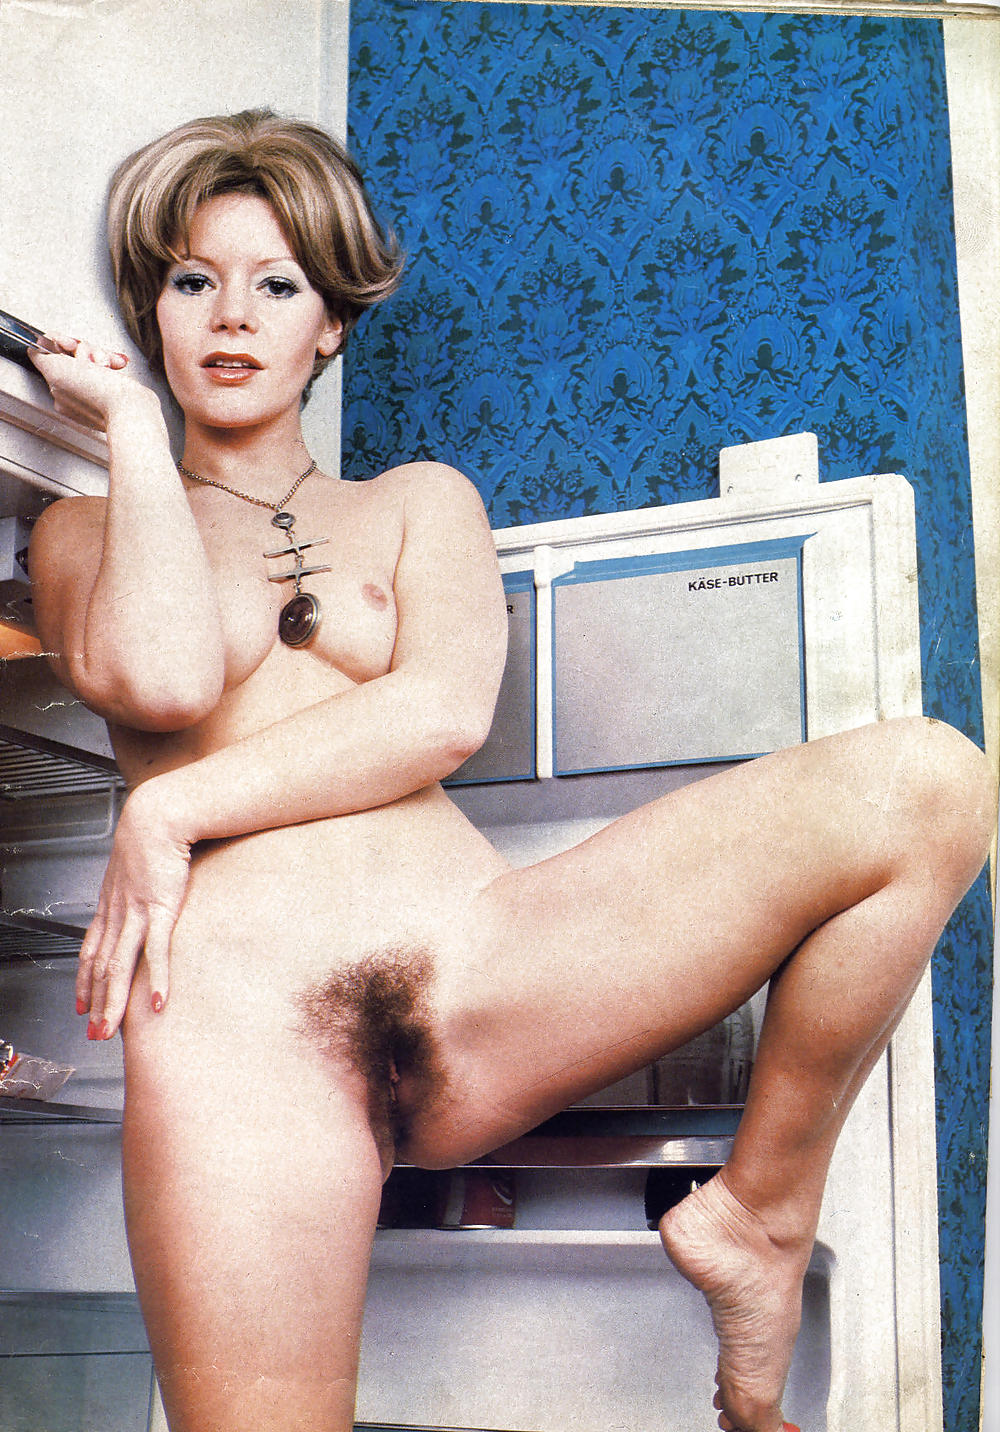 Mary millington pussy pics, biggest fattest oldest naked women